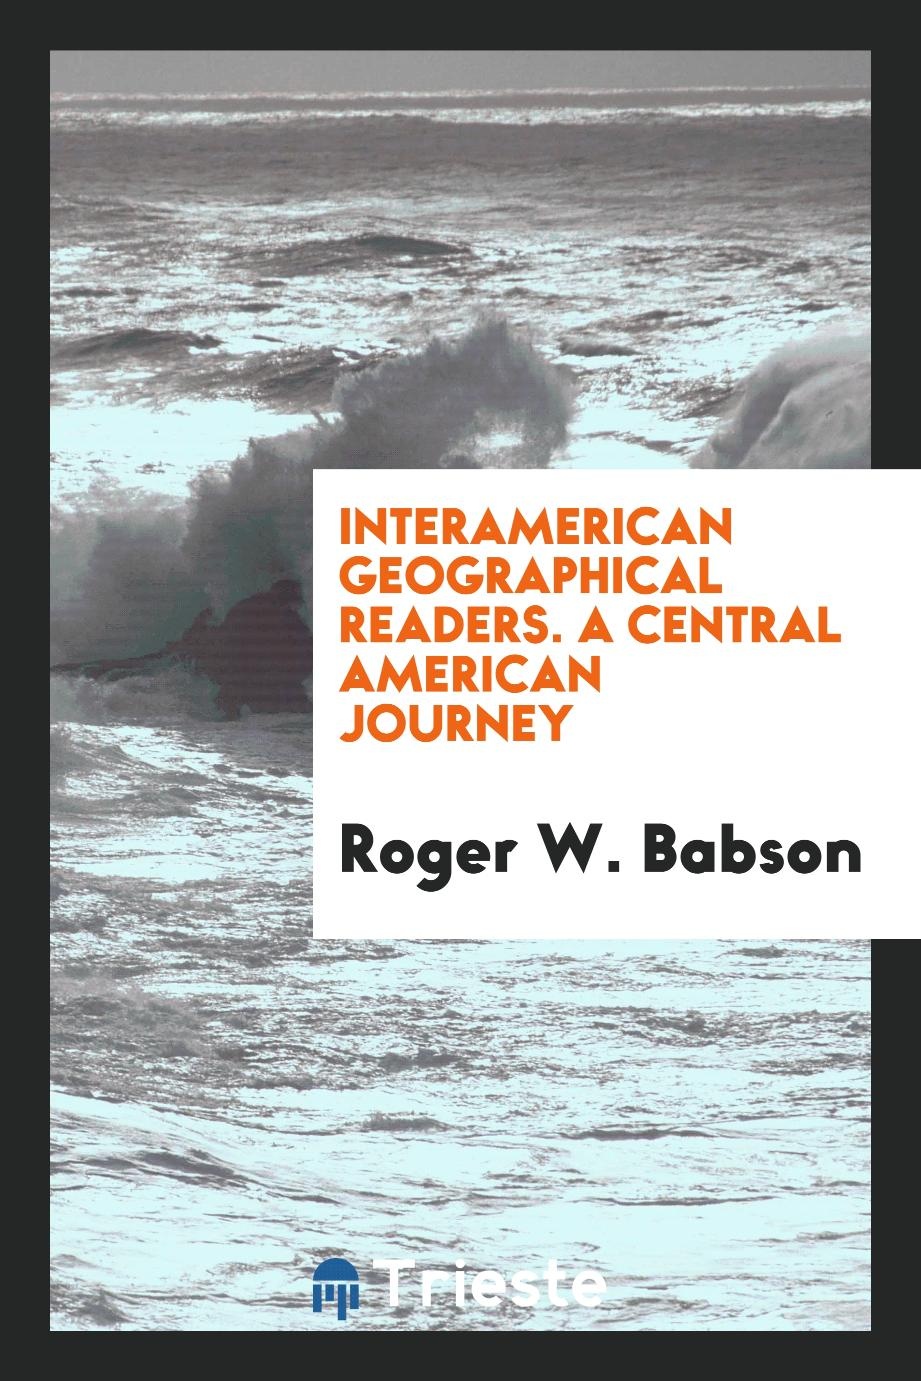 Interamerican Geographical Readers. A Central American Journey